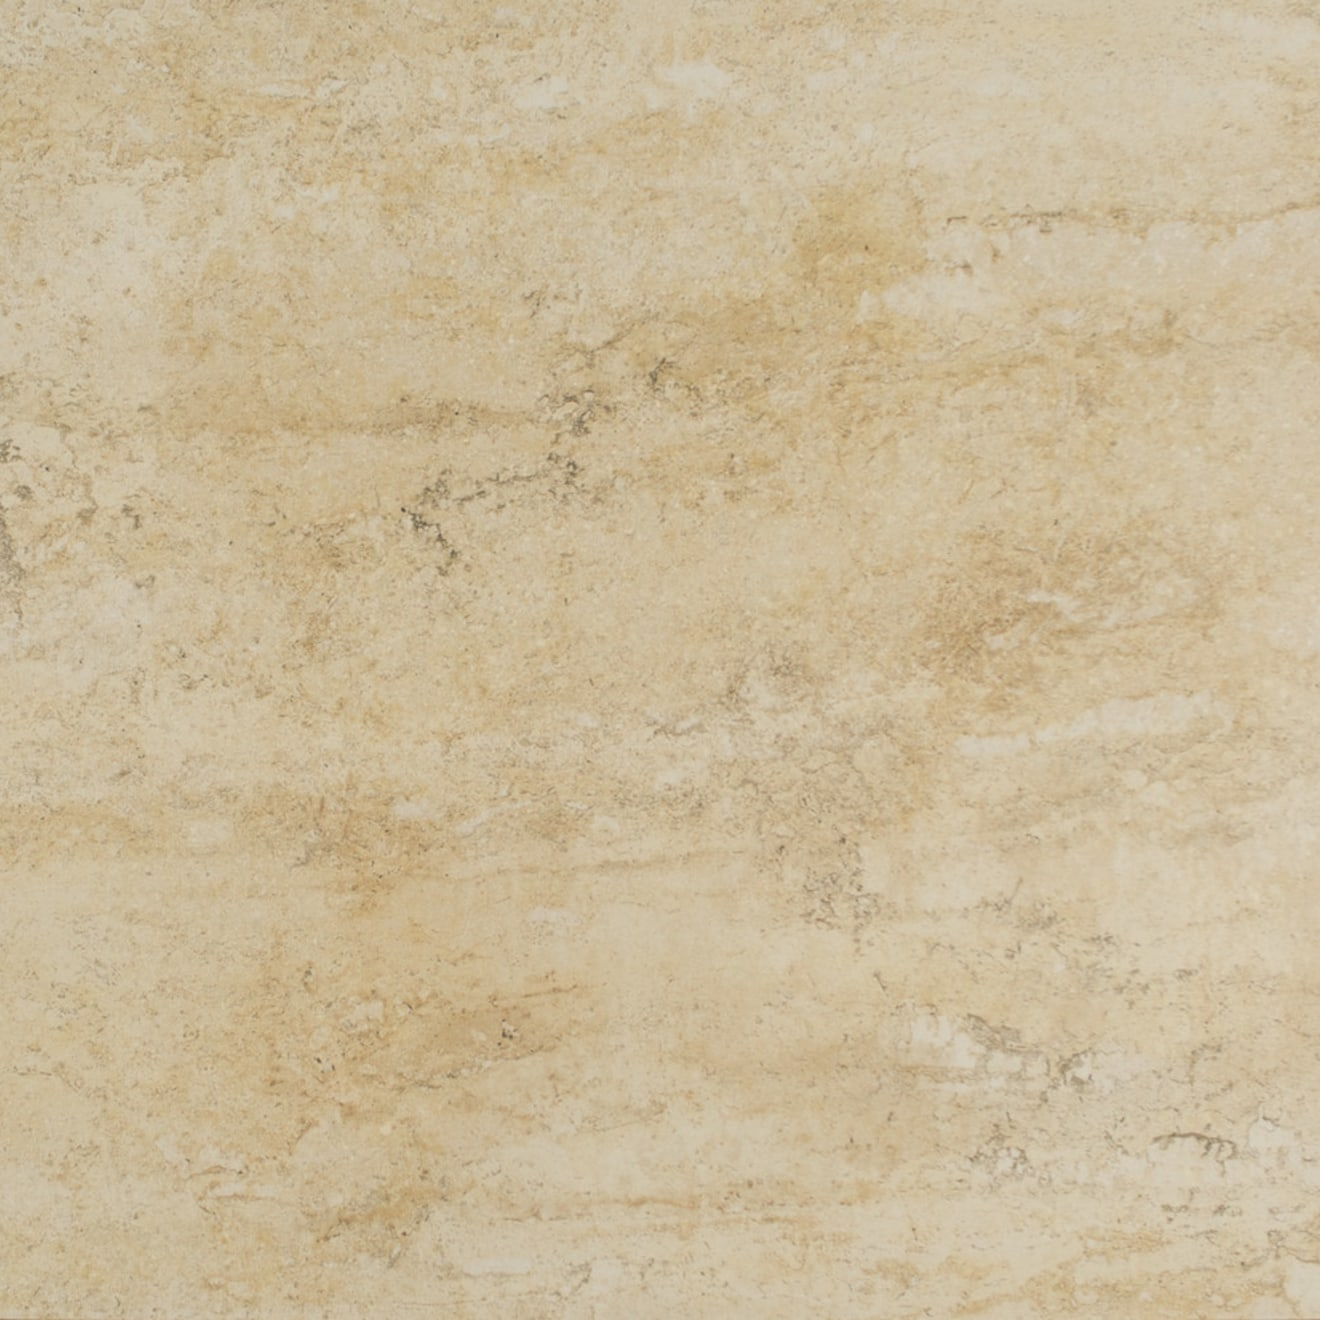 Bedrosians 24x24 Floor Tile Cesare Magnus Golden Aura Polished.